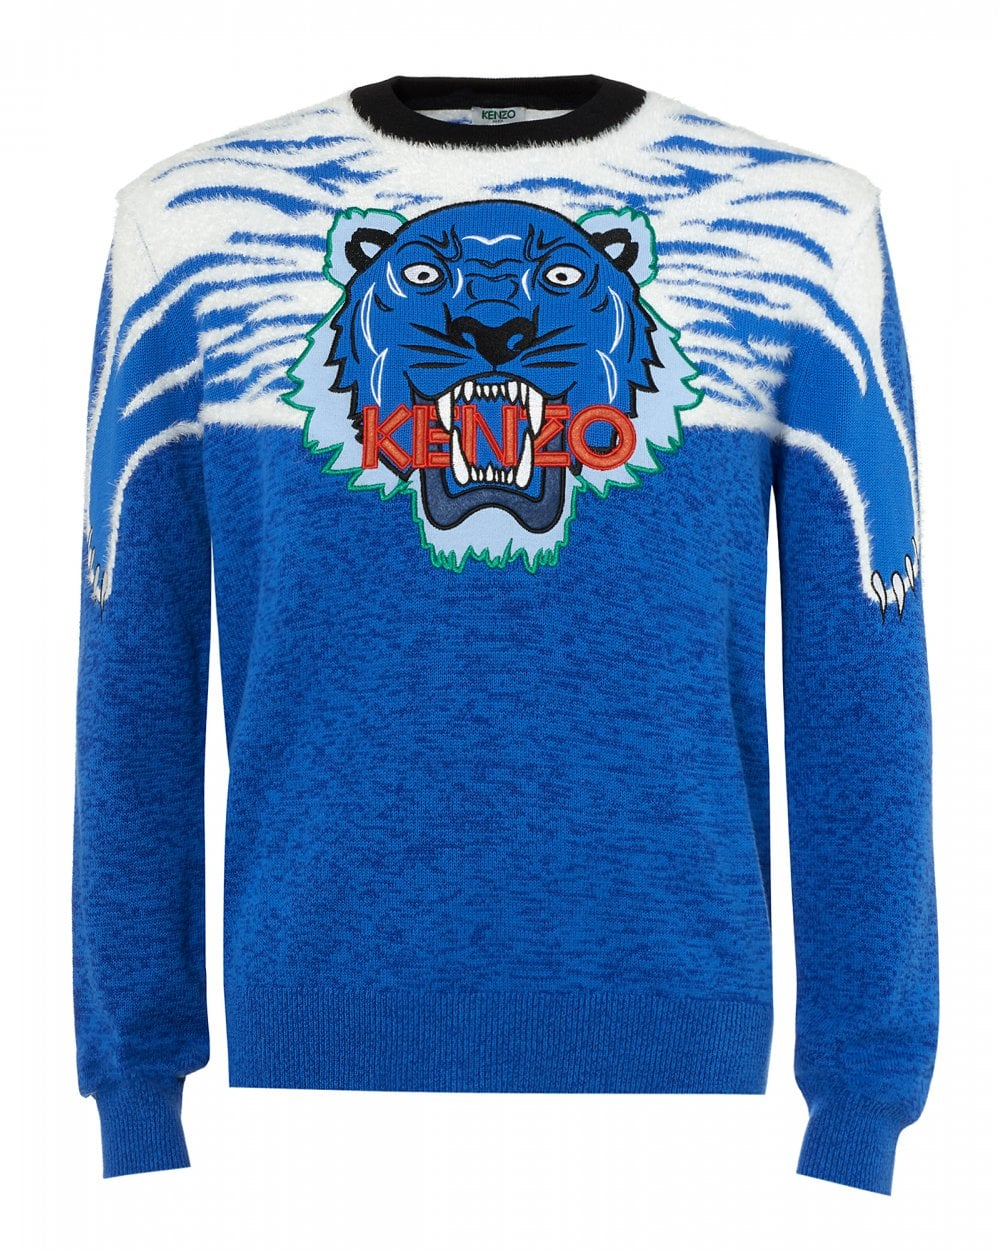 70f683d1a4 Kenzo Mens Claw Tiger Jumper, French Blue Sweater